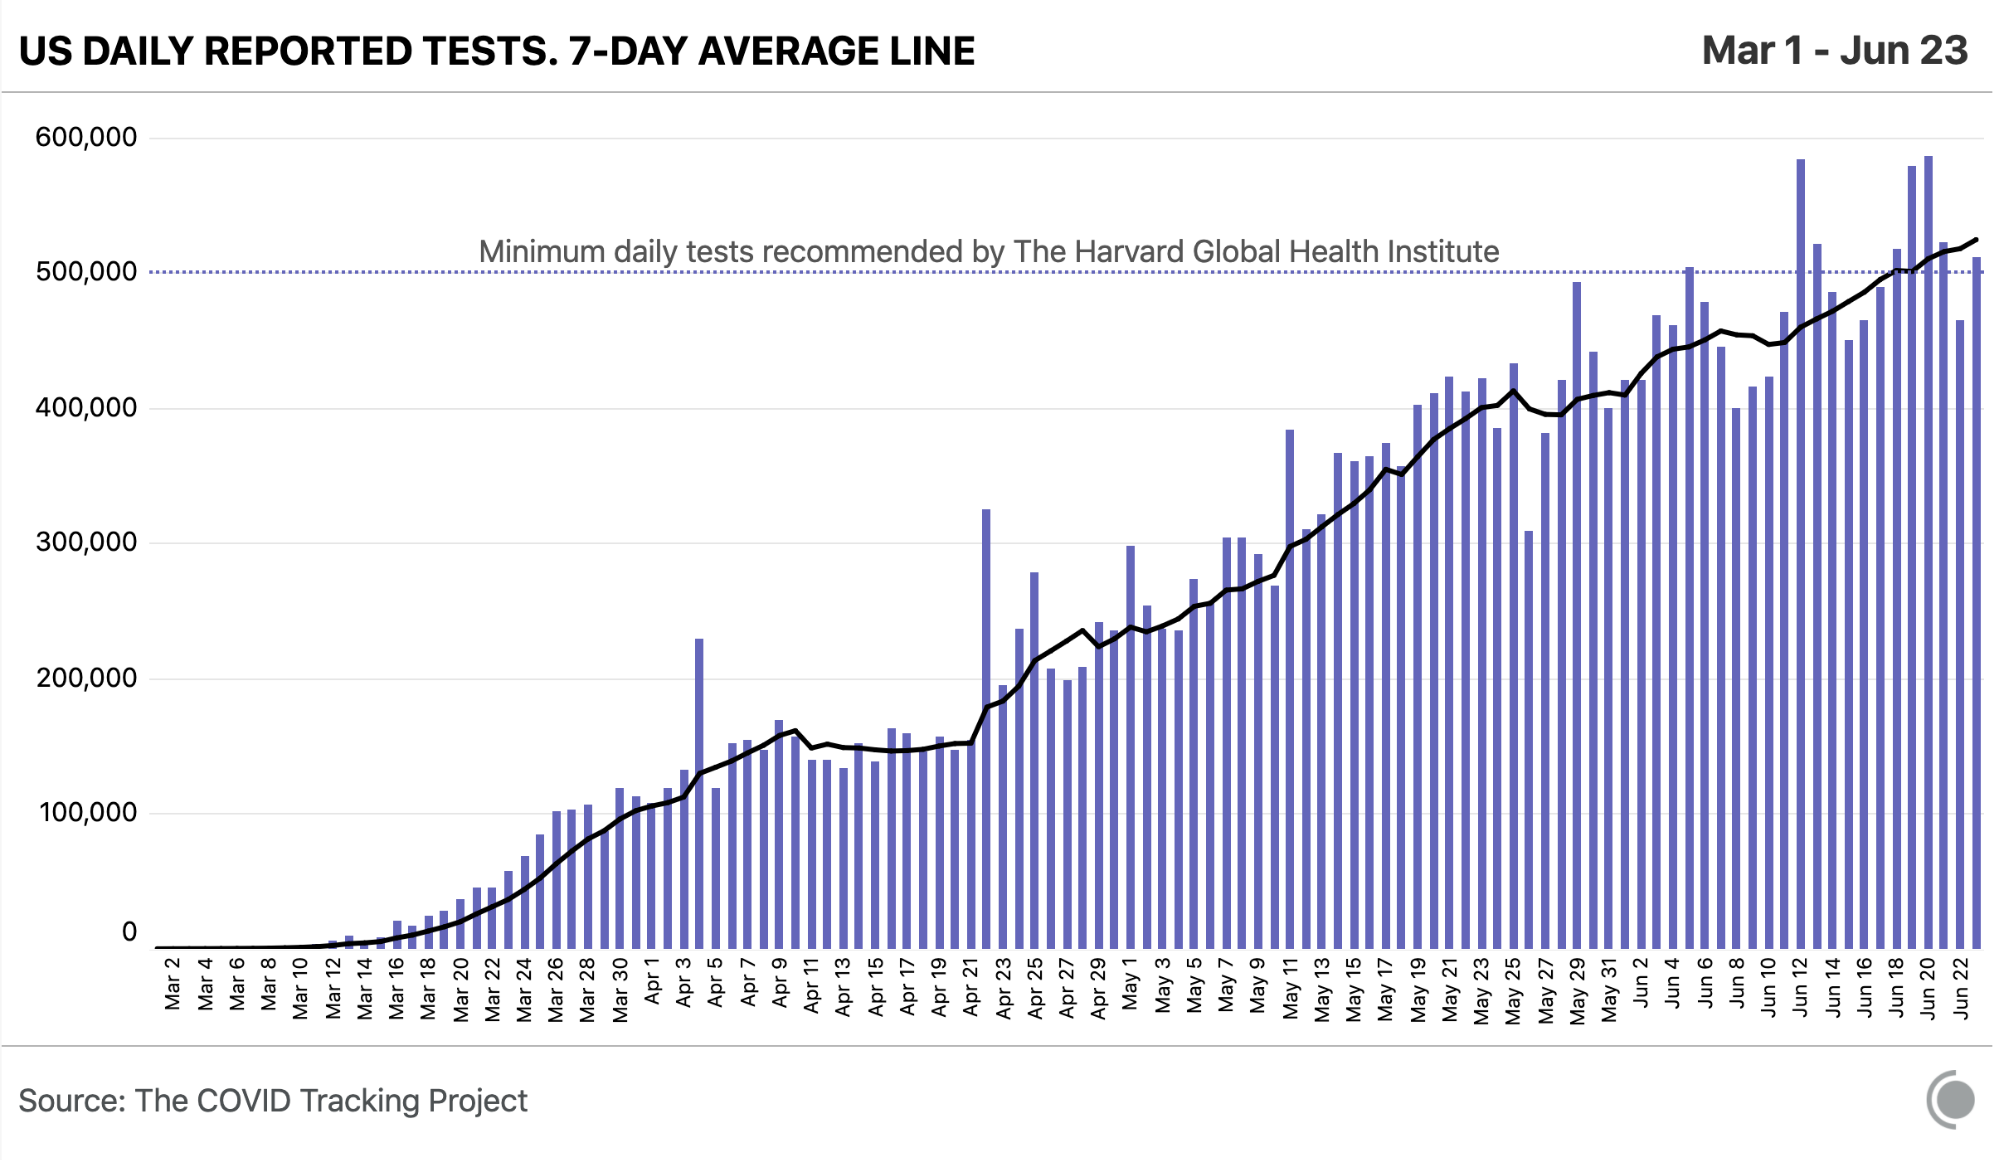 Chart showing daily reported COVID-19 tests rising nationwide, and this week achieving the daily minimum of 500k tests/day over a seven-day average